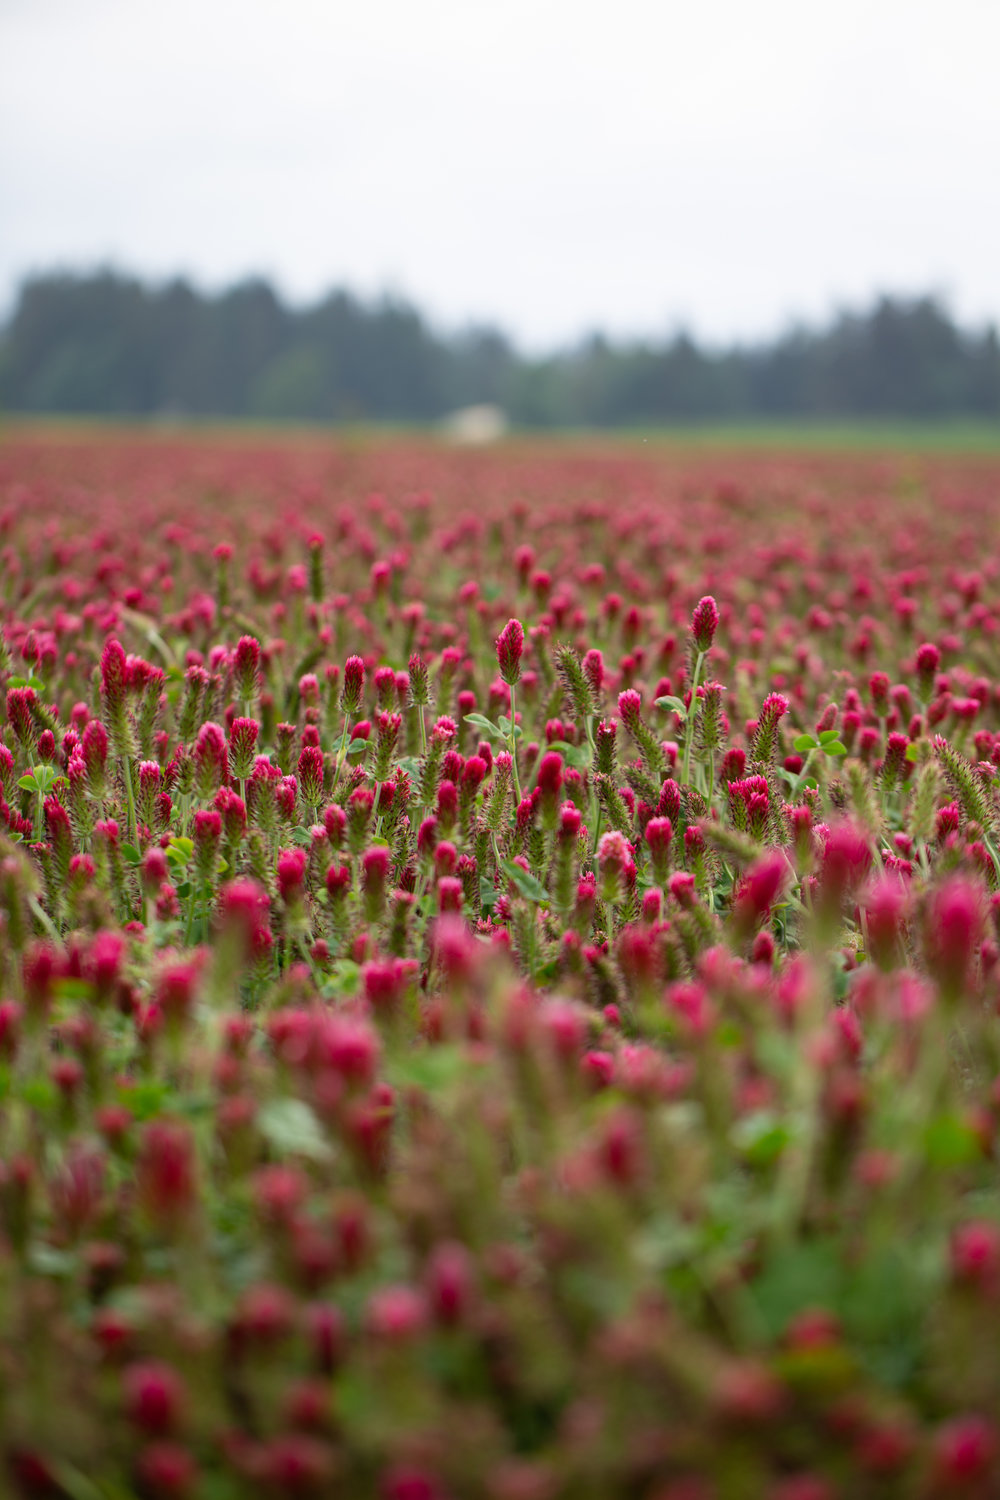 Clover fields by the parking lot